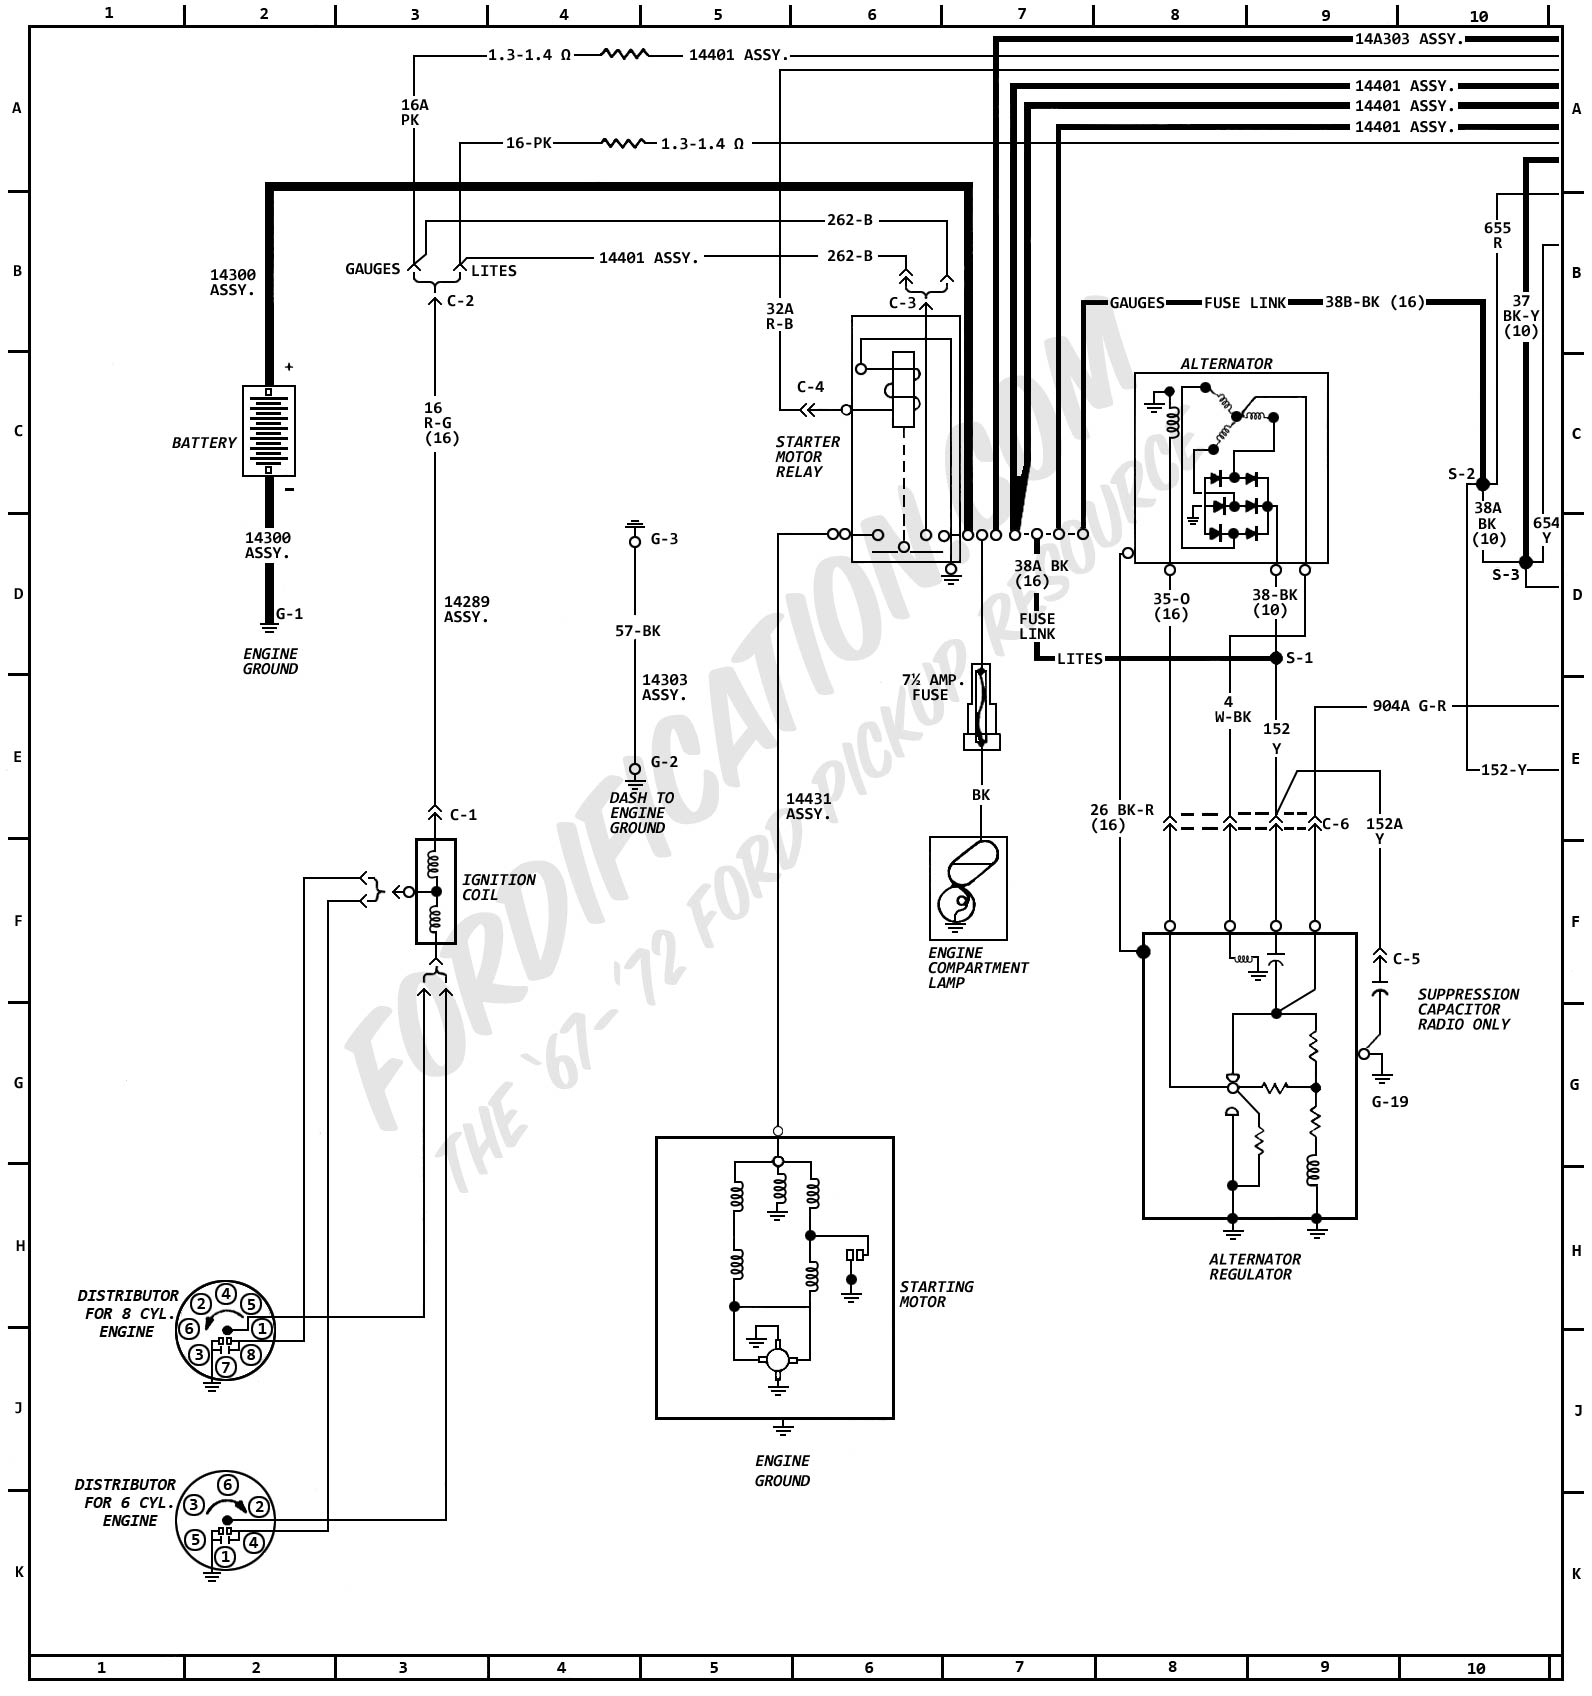 Ammeter Wiring Diagram 5 10 From 74 Votes Ammeter Wiring